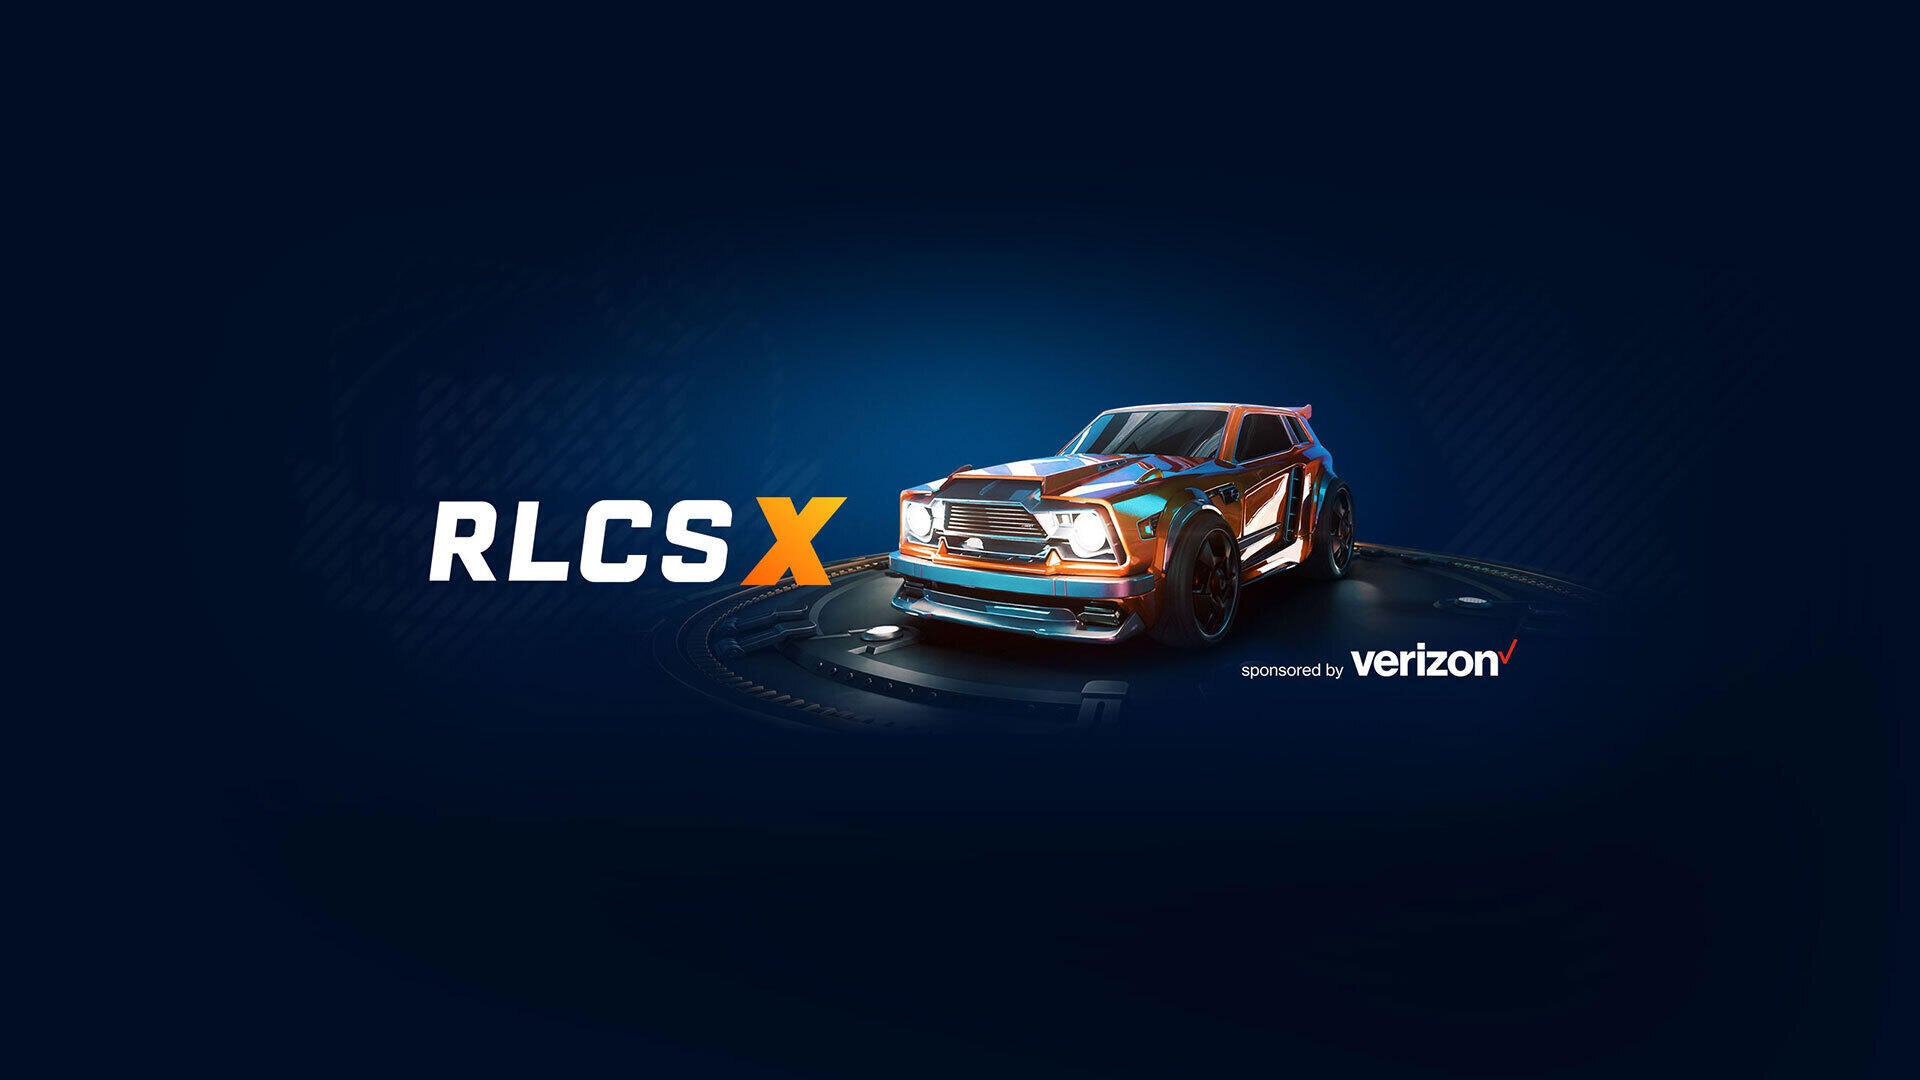 Verizon Signs On to Power the North American RLCS X Season Image